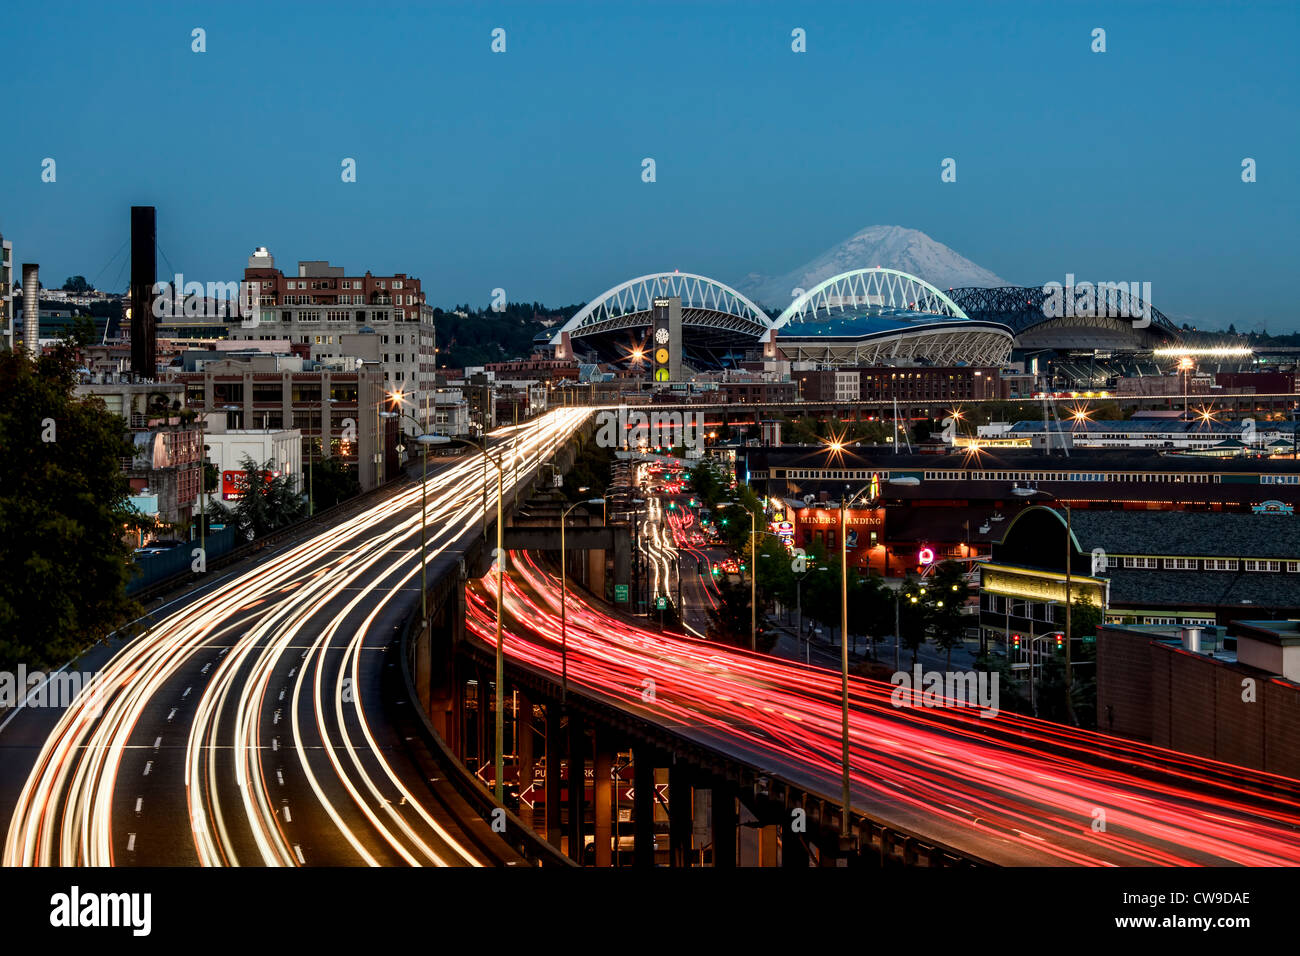 Seattle waterfront - Stock Image